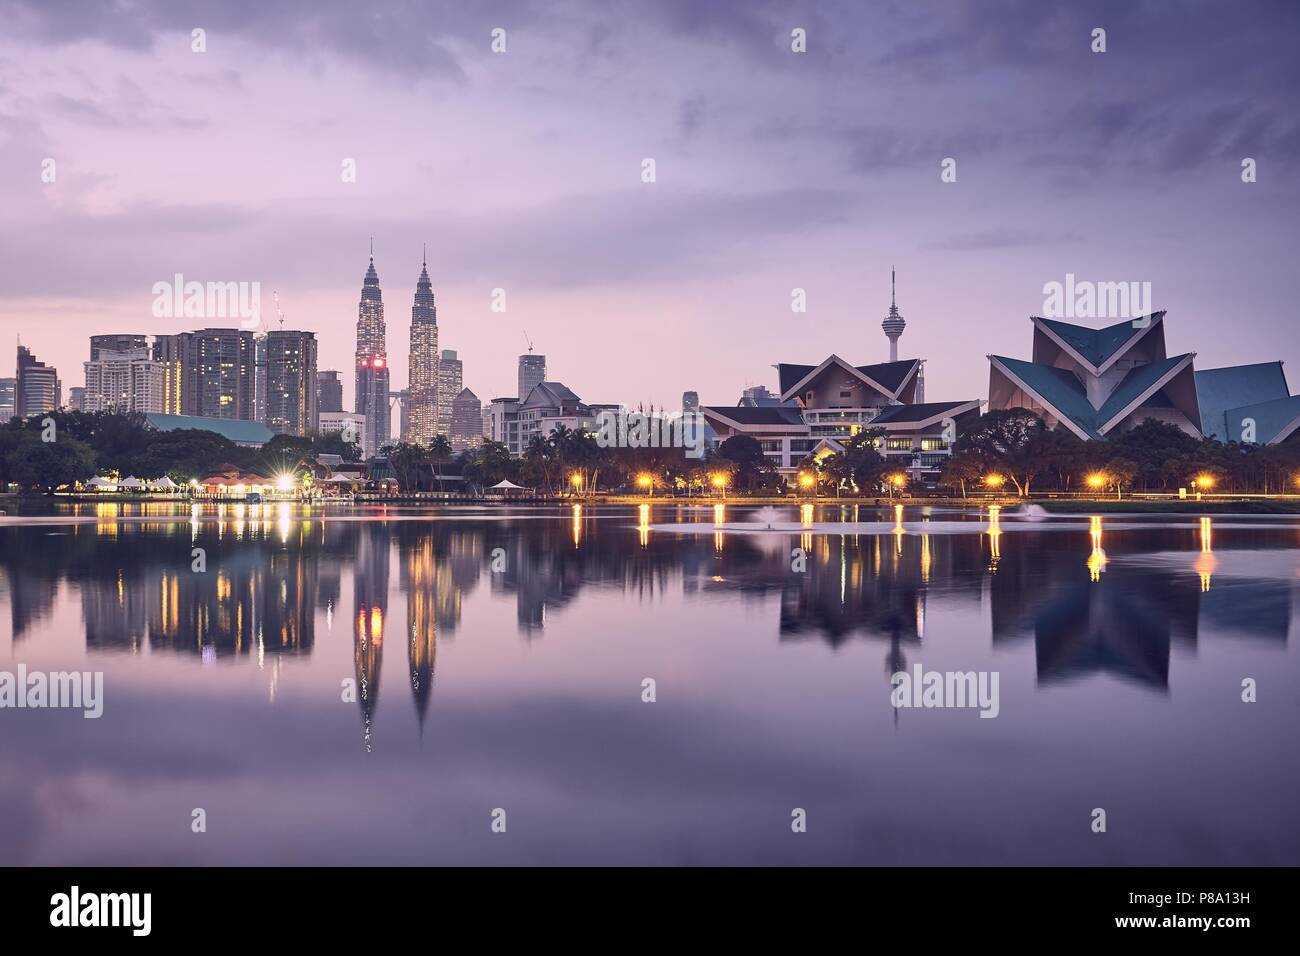 Moody sunrise in Kuala Lumpur in Malaysia. Reflection of the urban skyline in the lake. - Stock Image